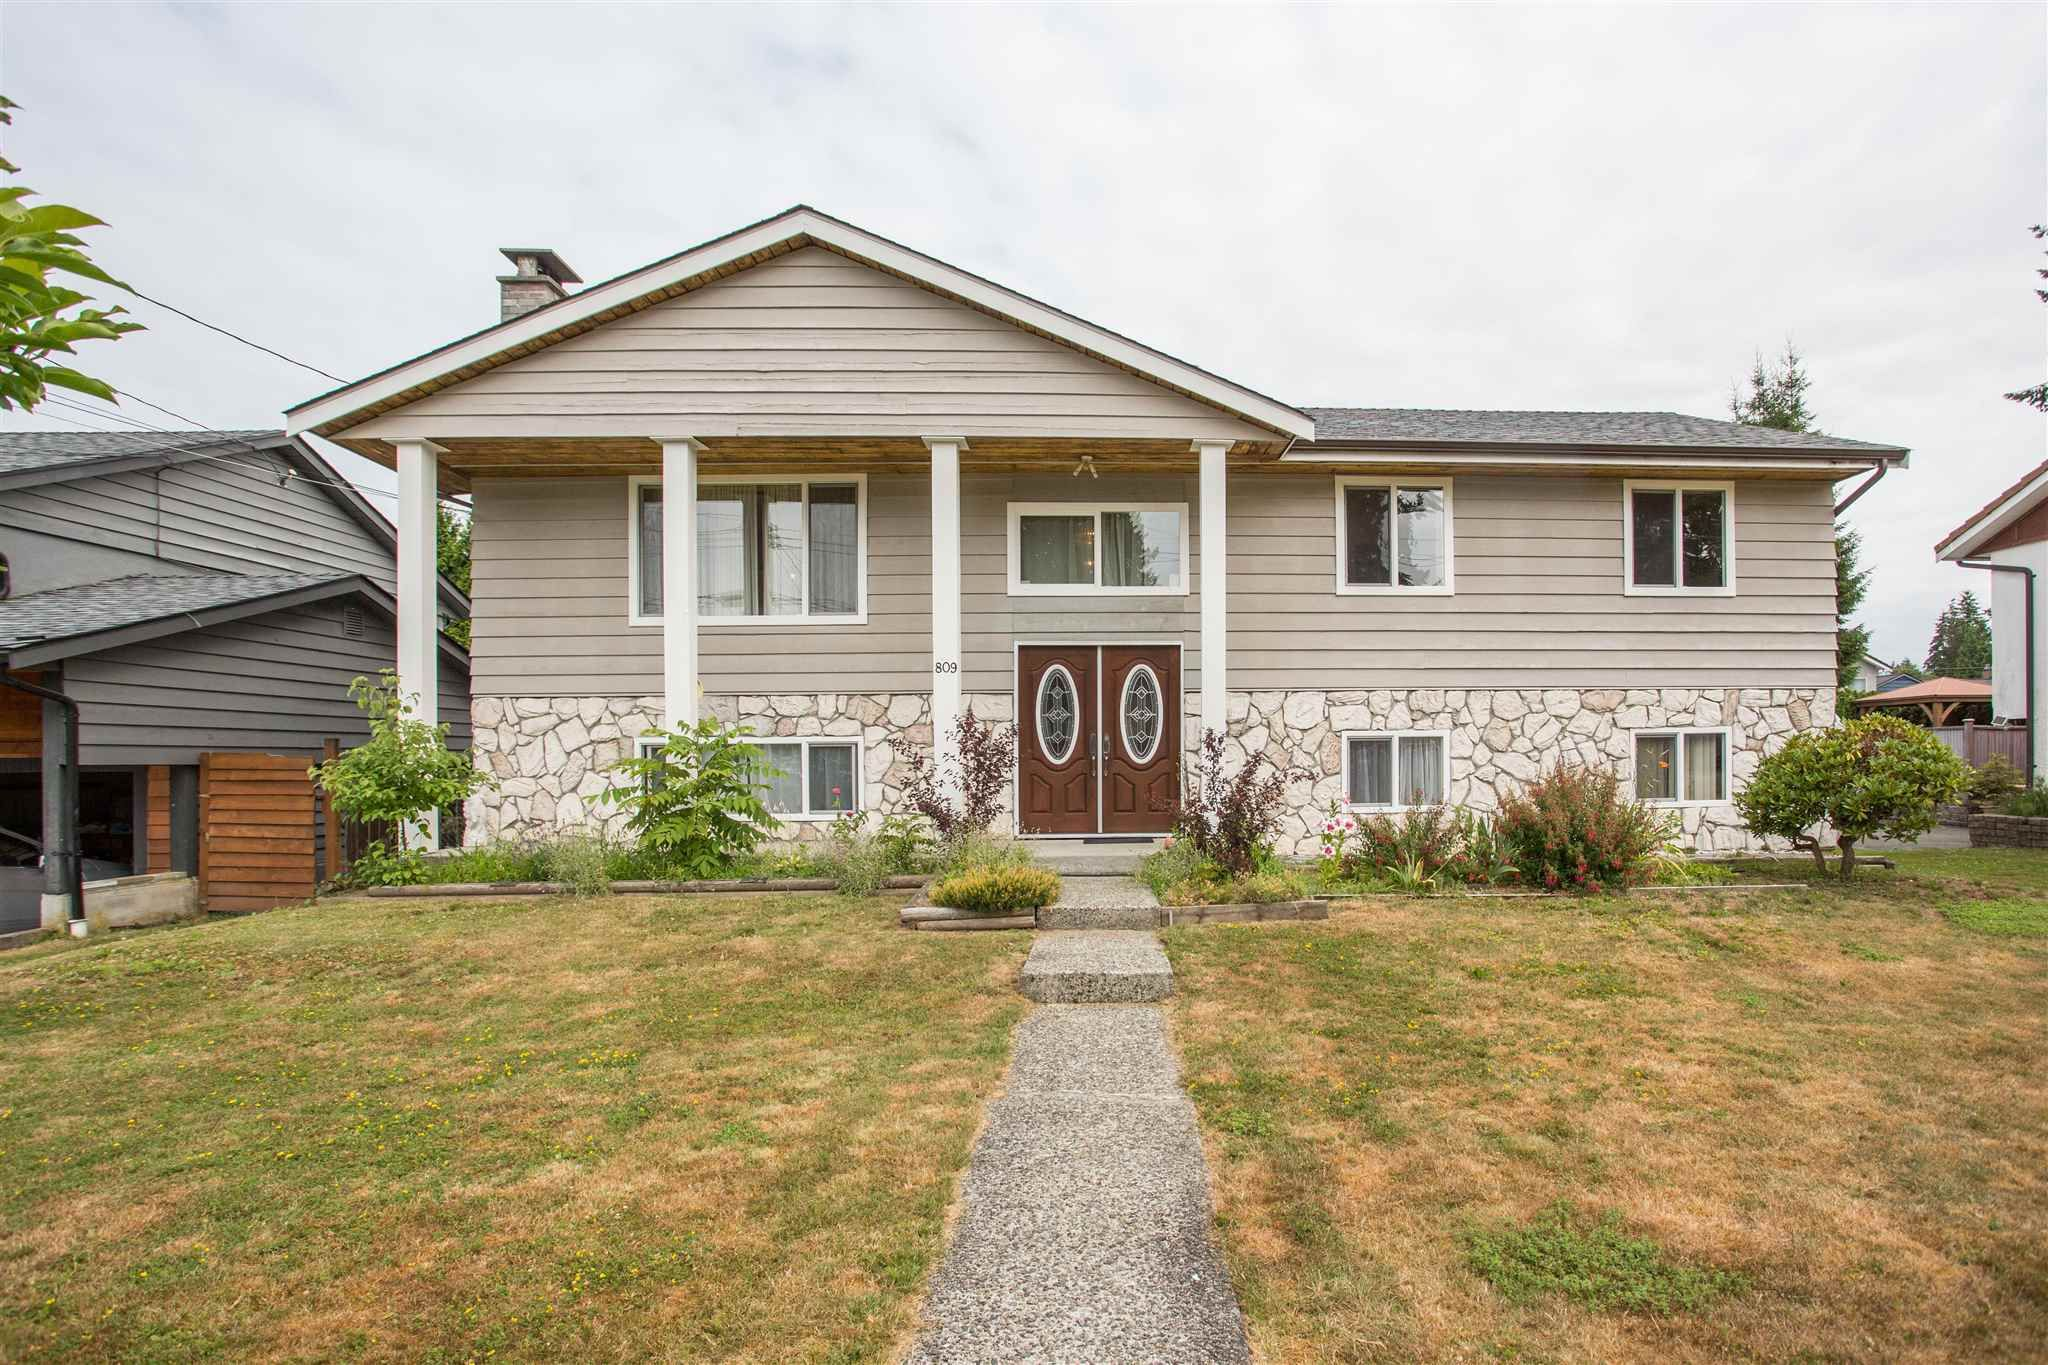 Main Photo: 809 RUNNYMEDE Avenue in Coquitlam: Coquitlam West House for sale : MLS®# R2600920